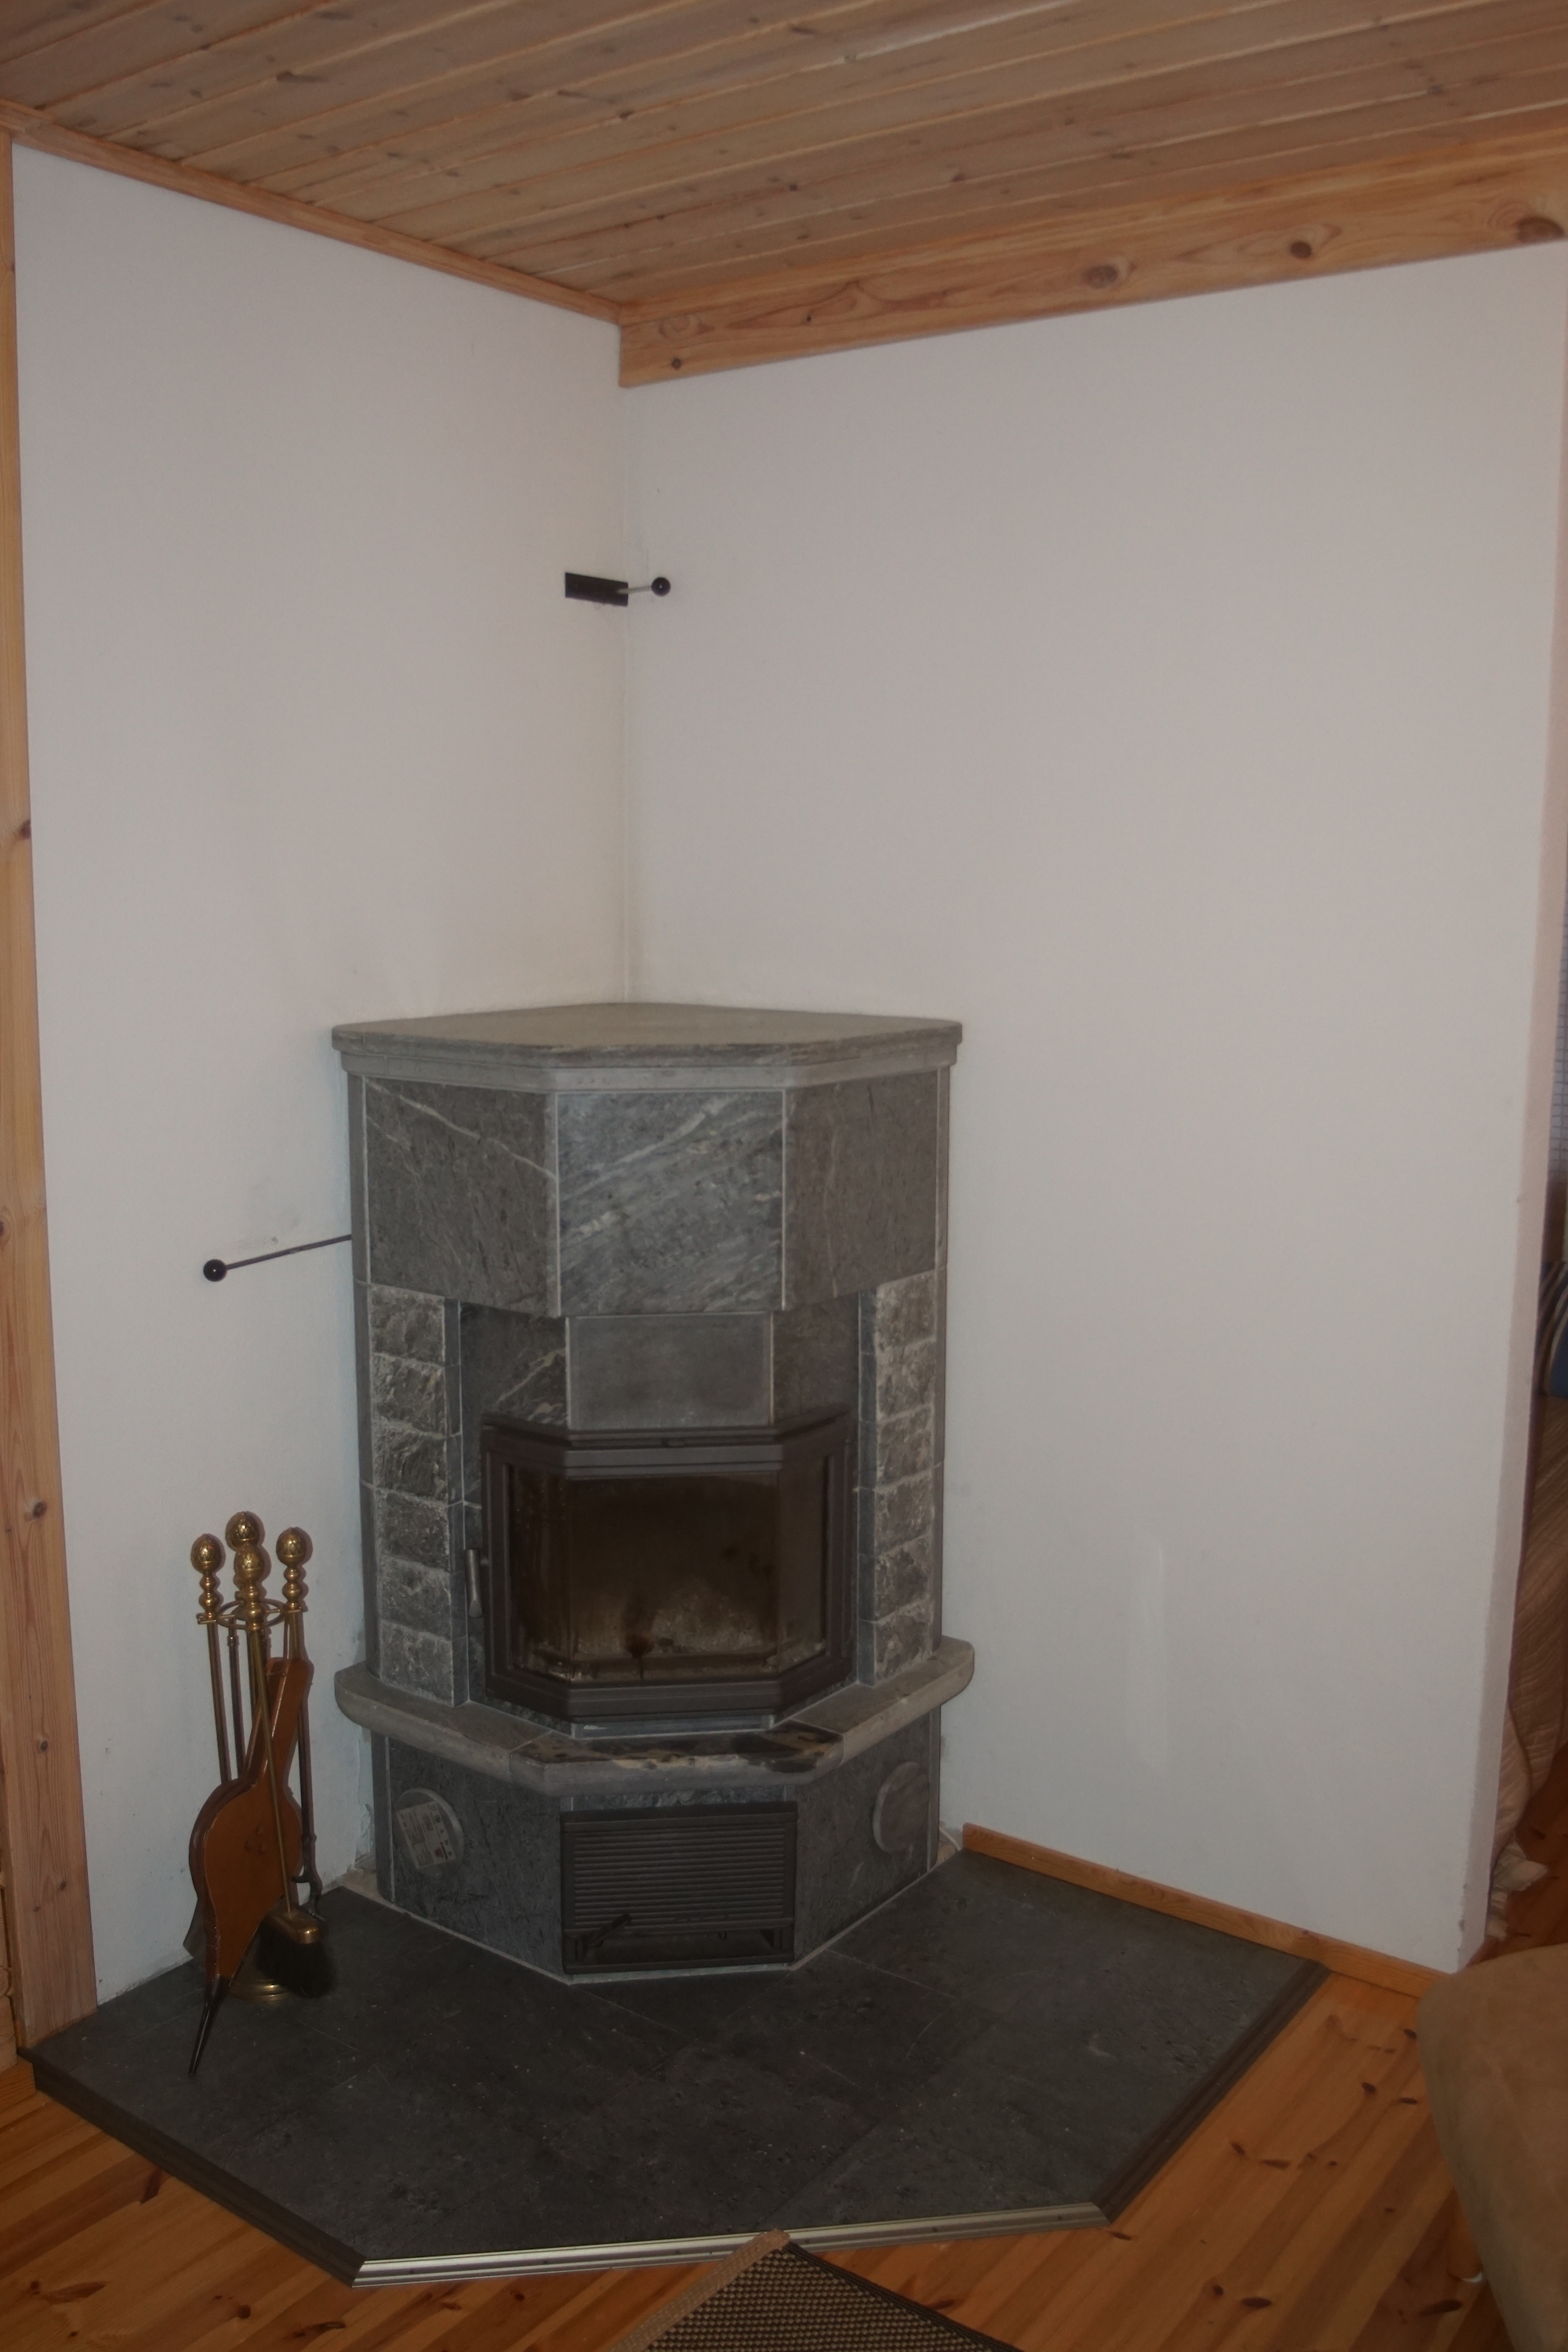 Fireplace in the lakeside sauna building